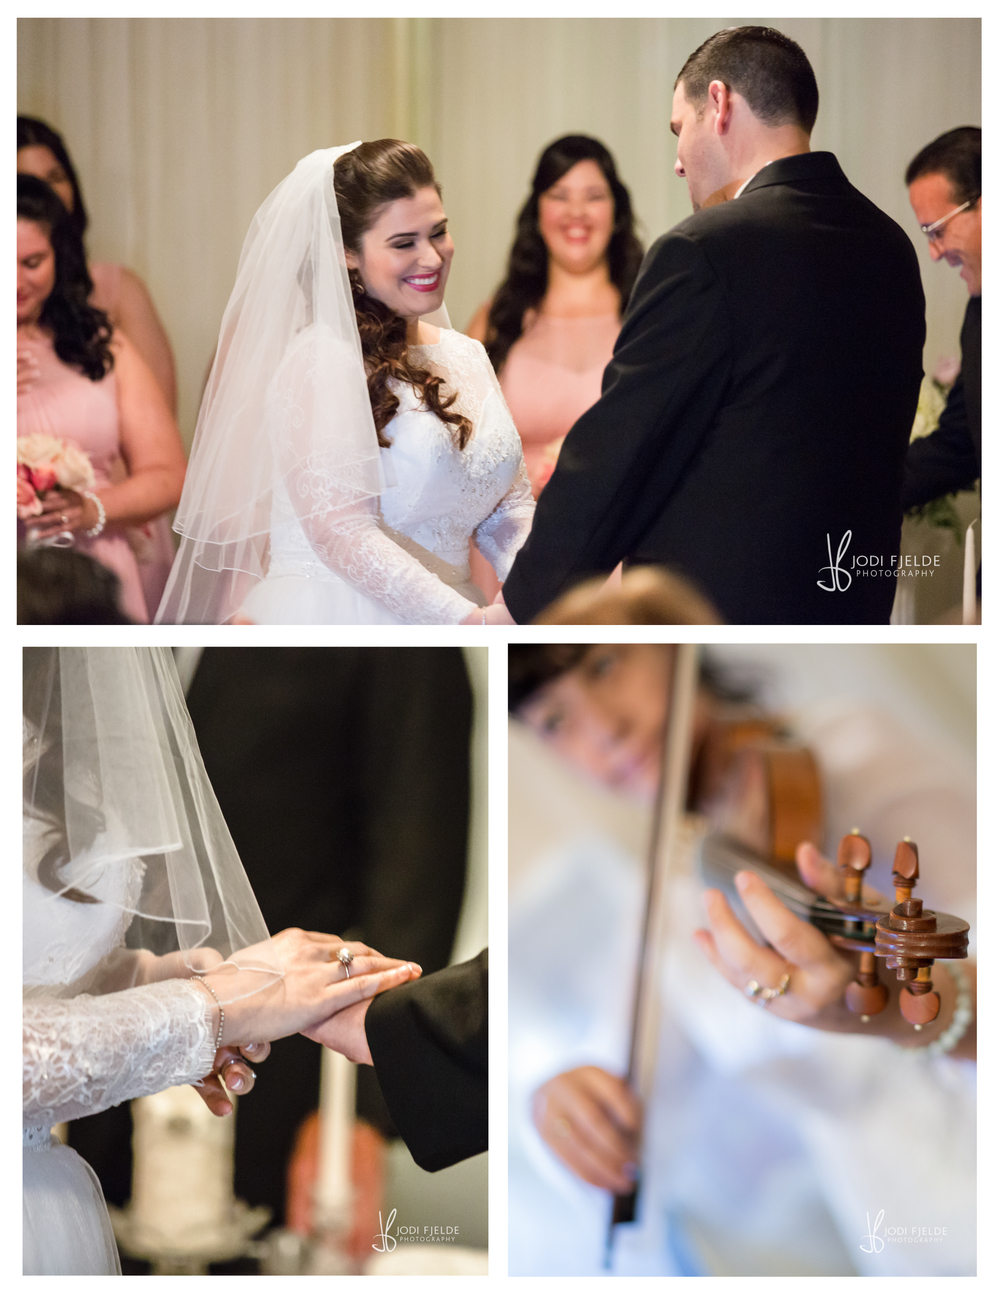 Ballroom Wedding_Ft Lauderdale_Florida_wedding_Maria_&_Juan_photography_jodi_Fjelde_photography-10.jpg